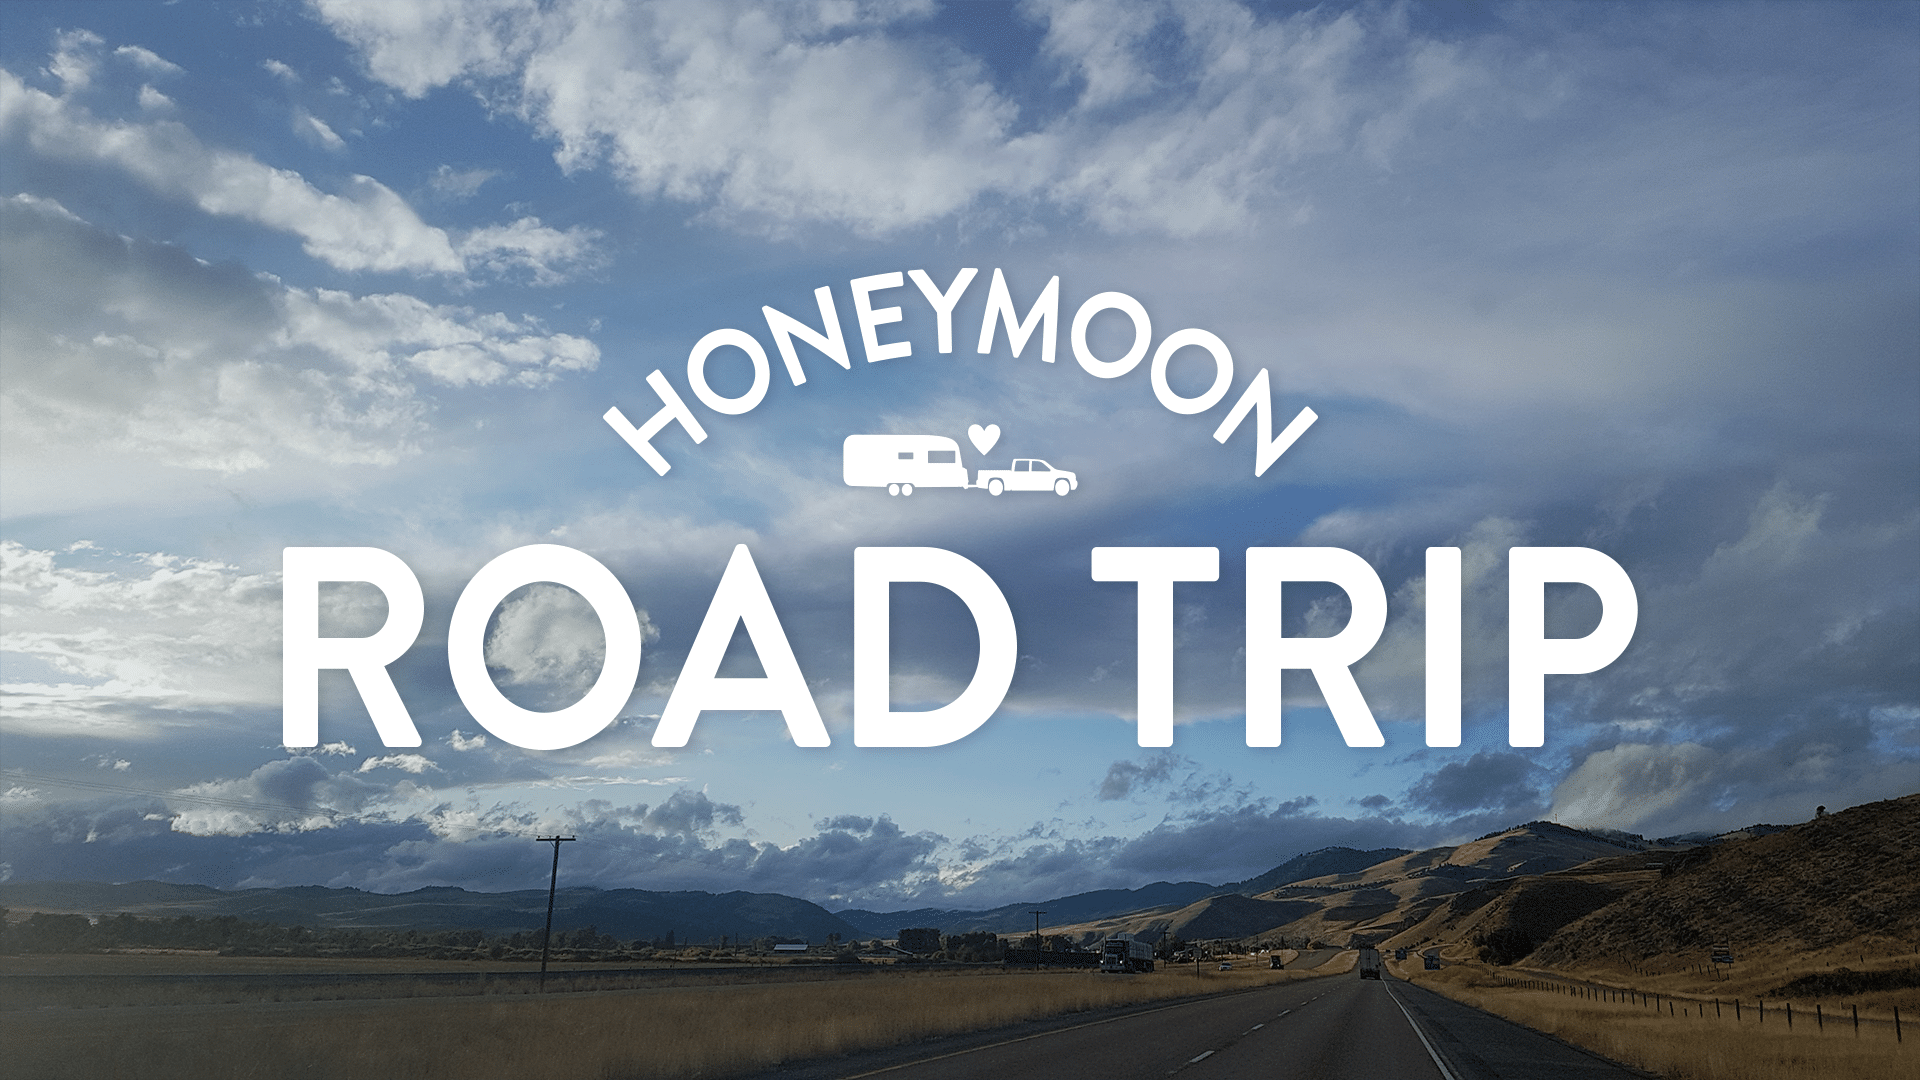 Honeymoon Road Trip - Main Image